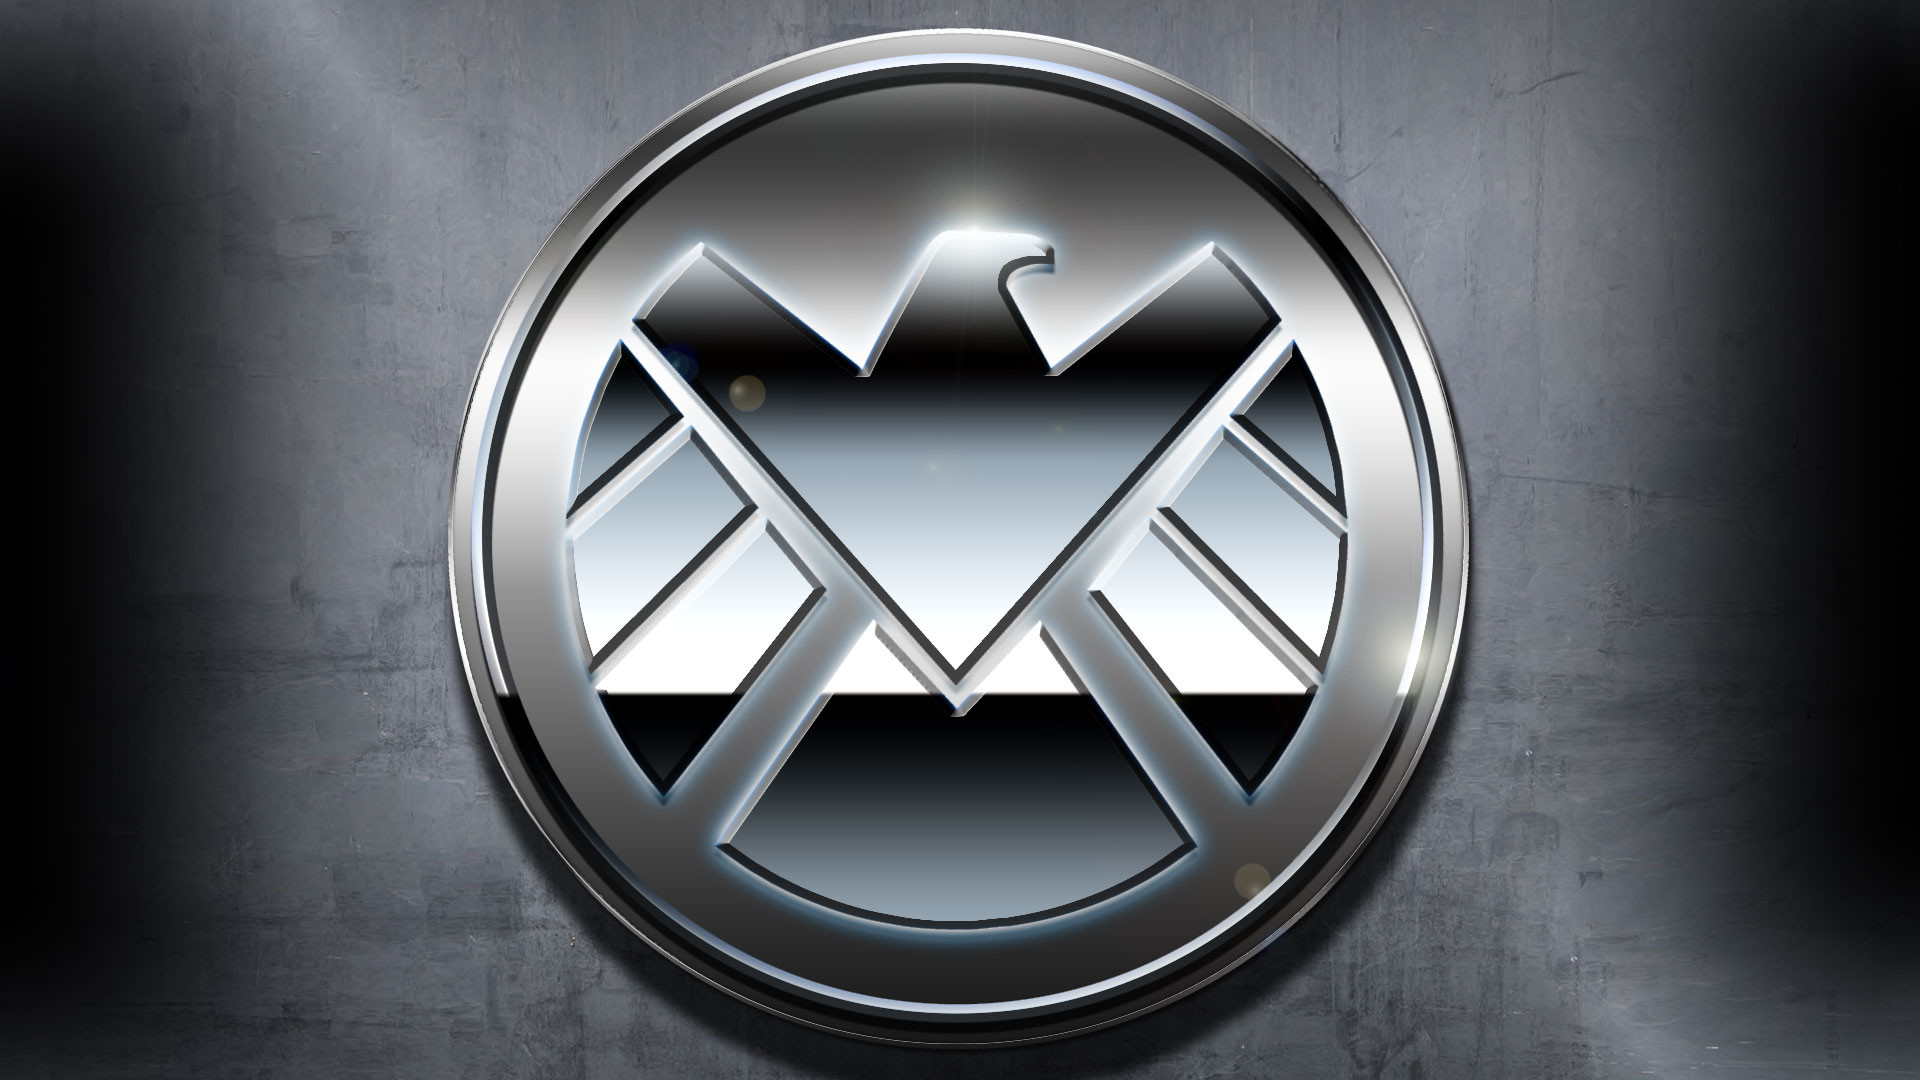 agents of shield logo wallpaper | Top HQ Wallpapers